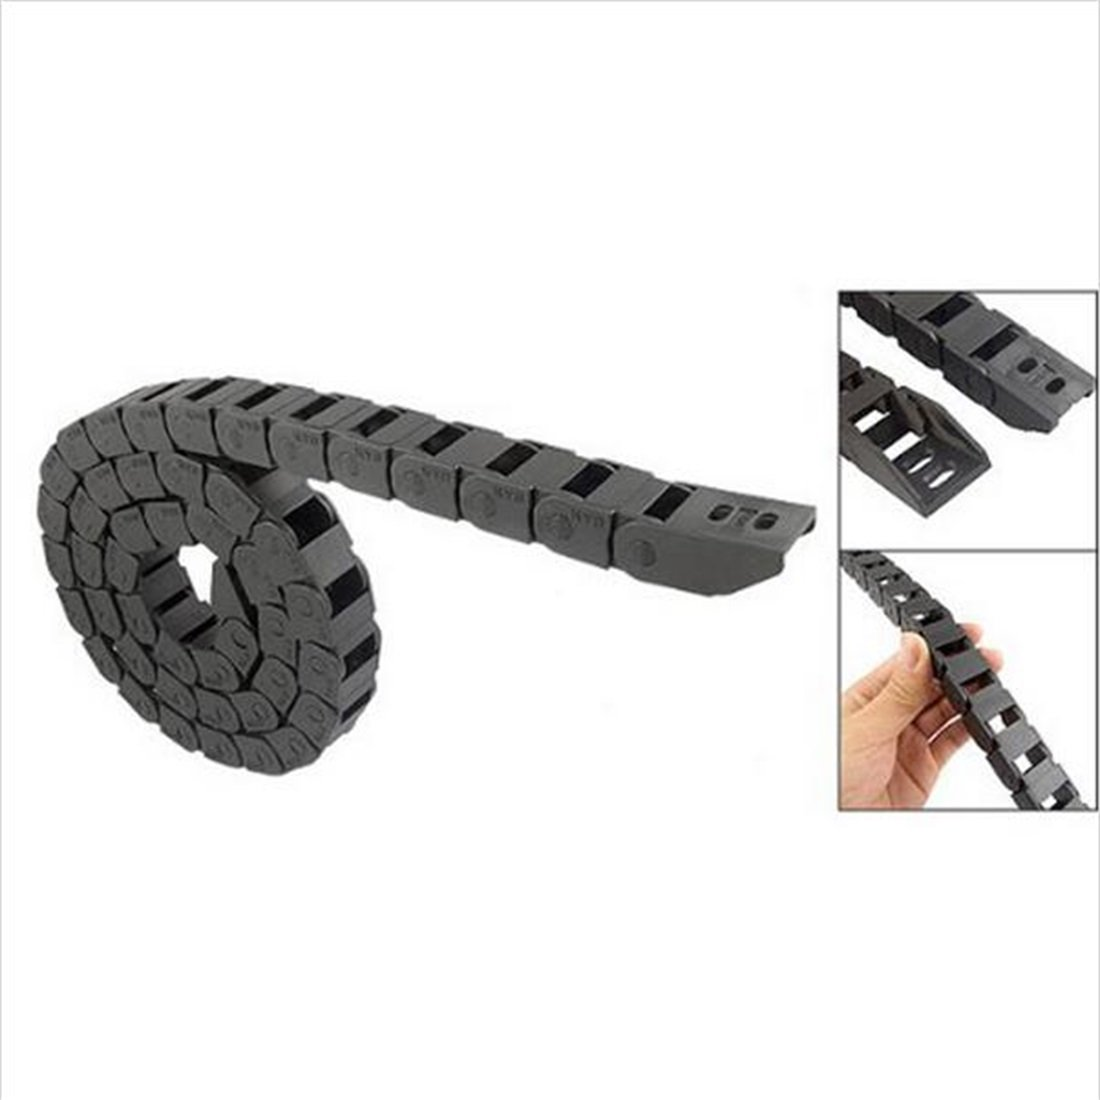 15 x 20 mm R28 Plastic Cable Drag Chain For CNC Machine Inside diameter not open cover